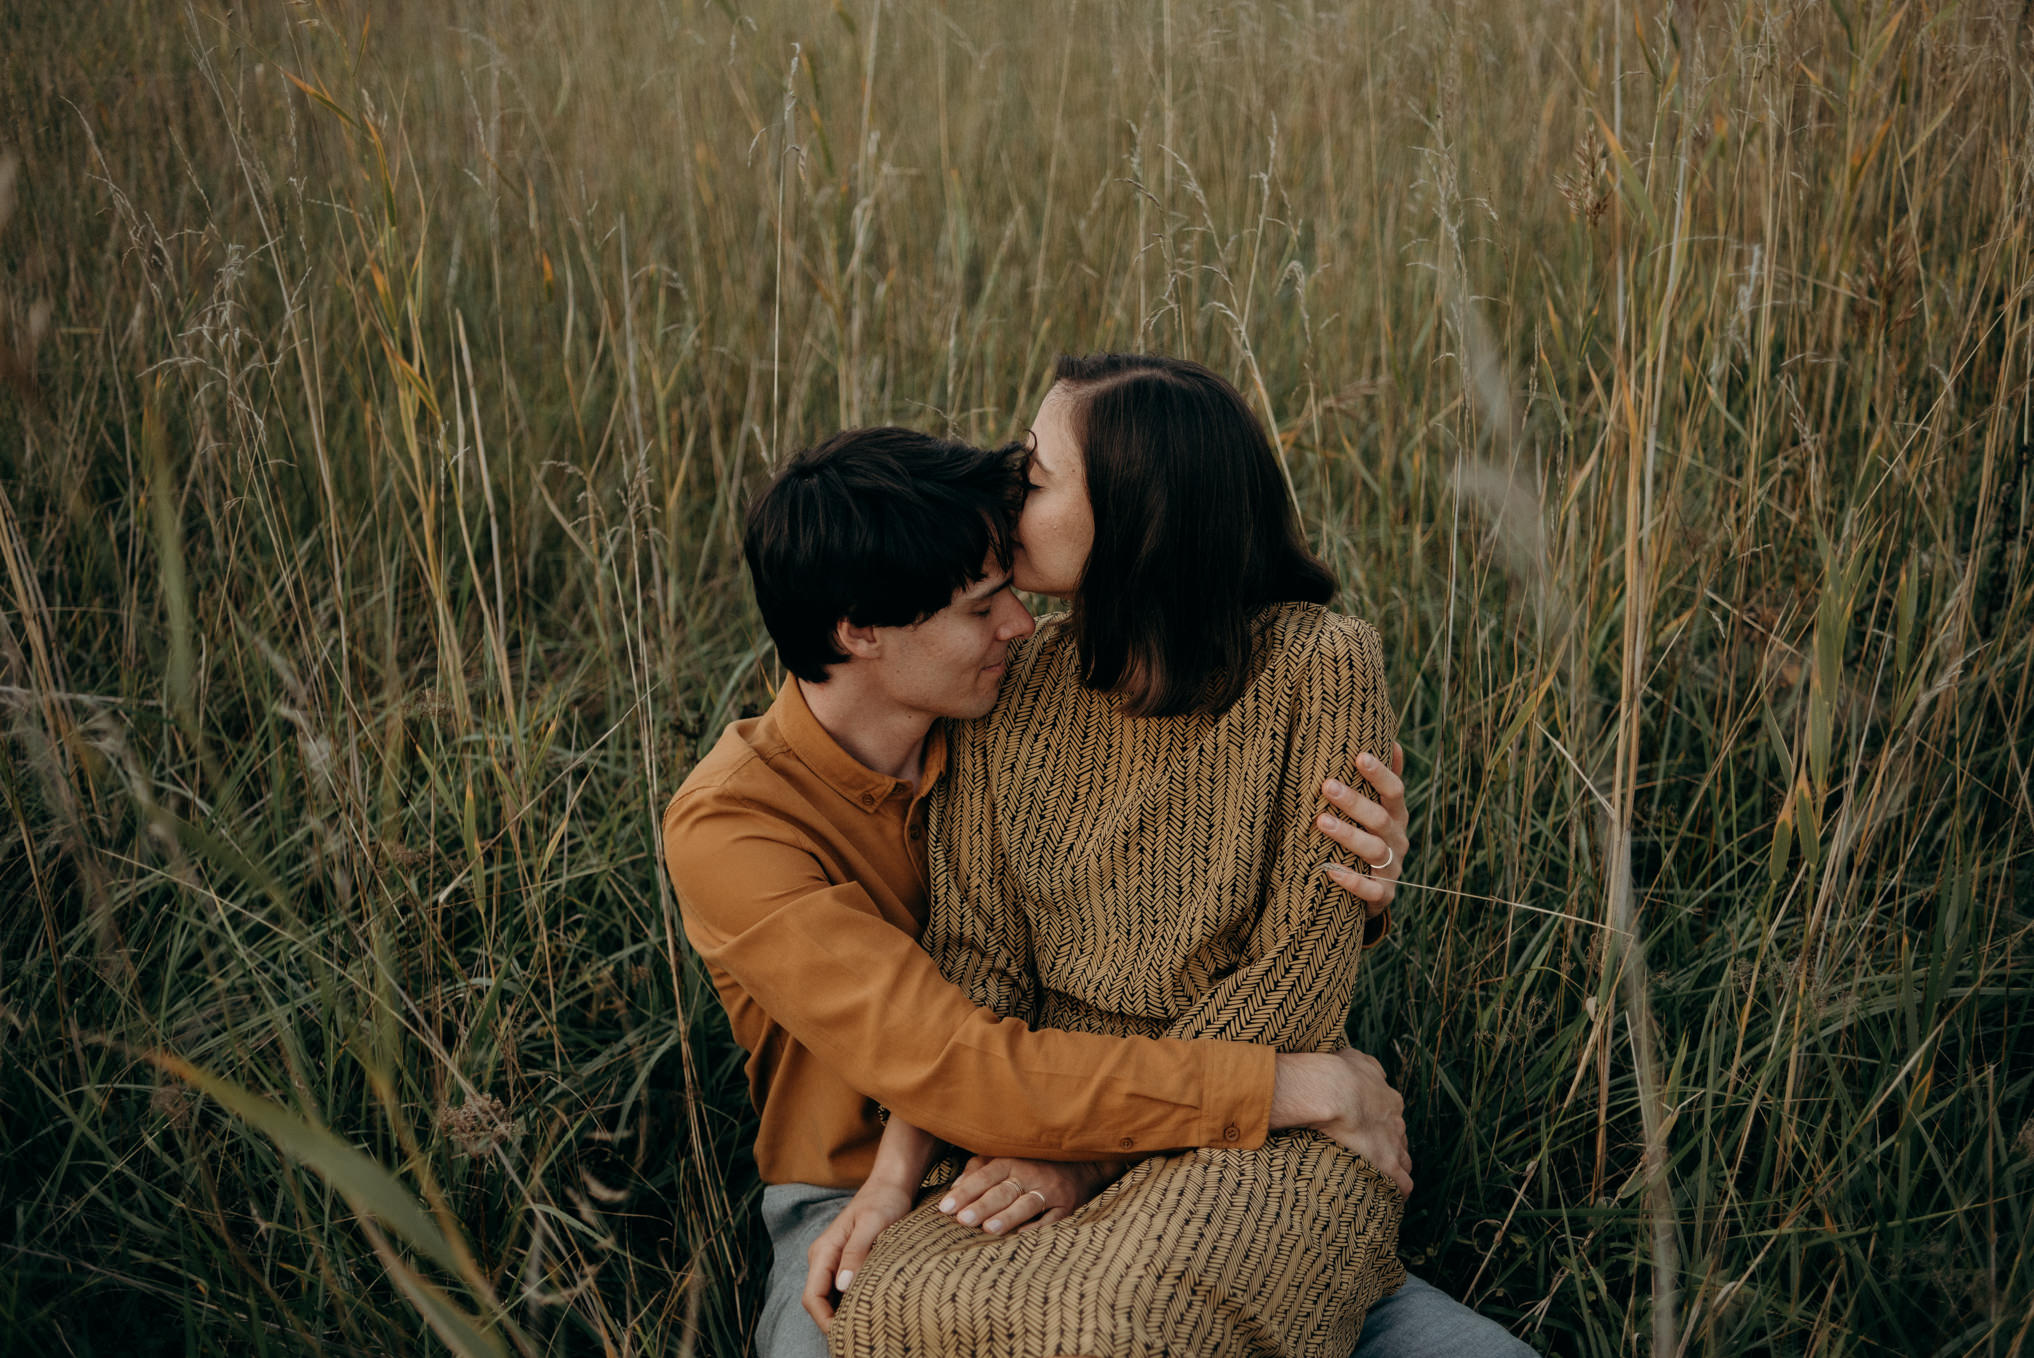 couple in love sitting in tall grass